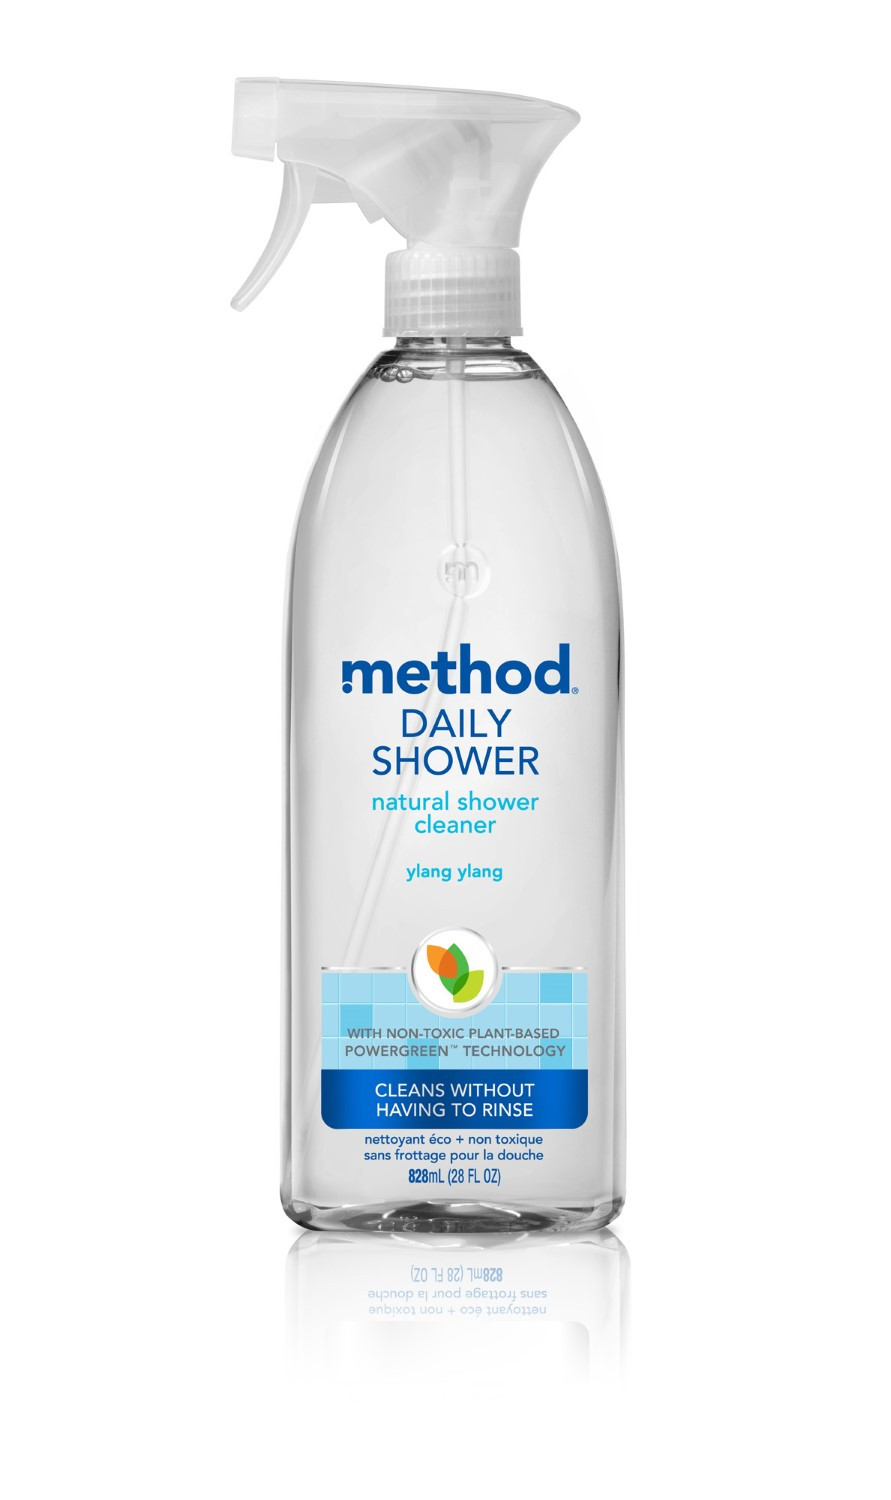 Best ideas about Natural Bathroom Cleaner . Save or Pin Method Daily Shower Natural Shower Cleaner Ylang Ylang Now.